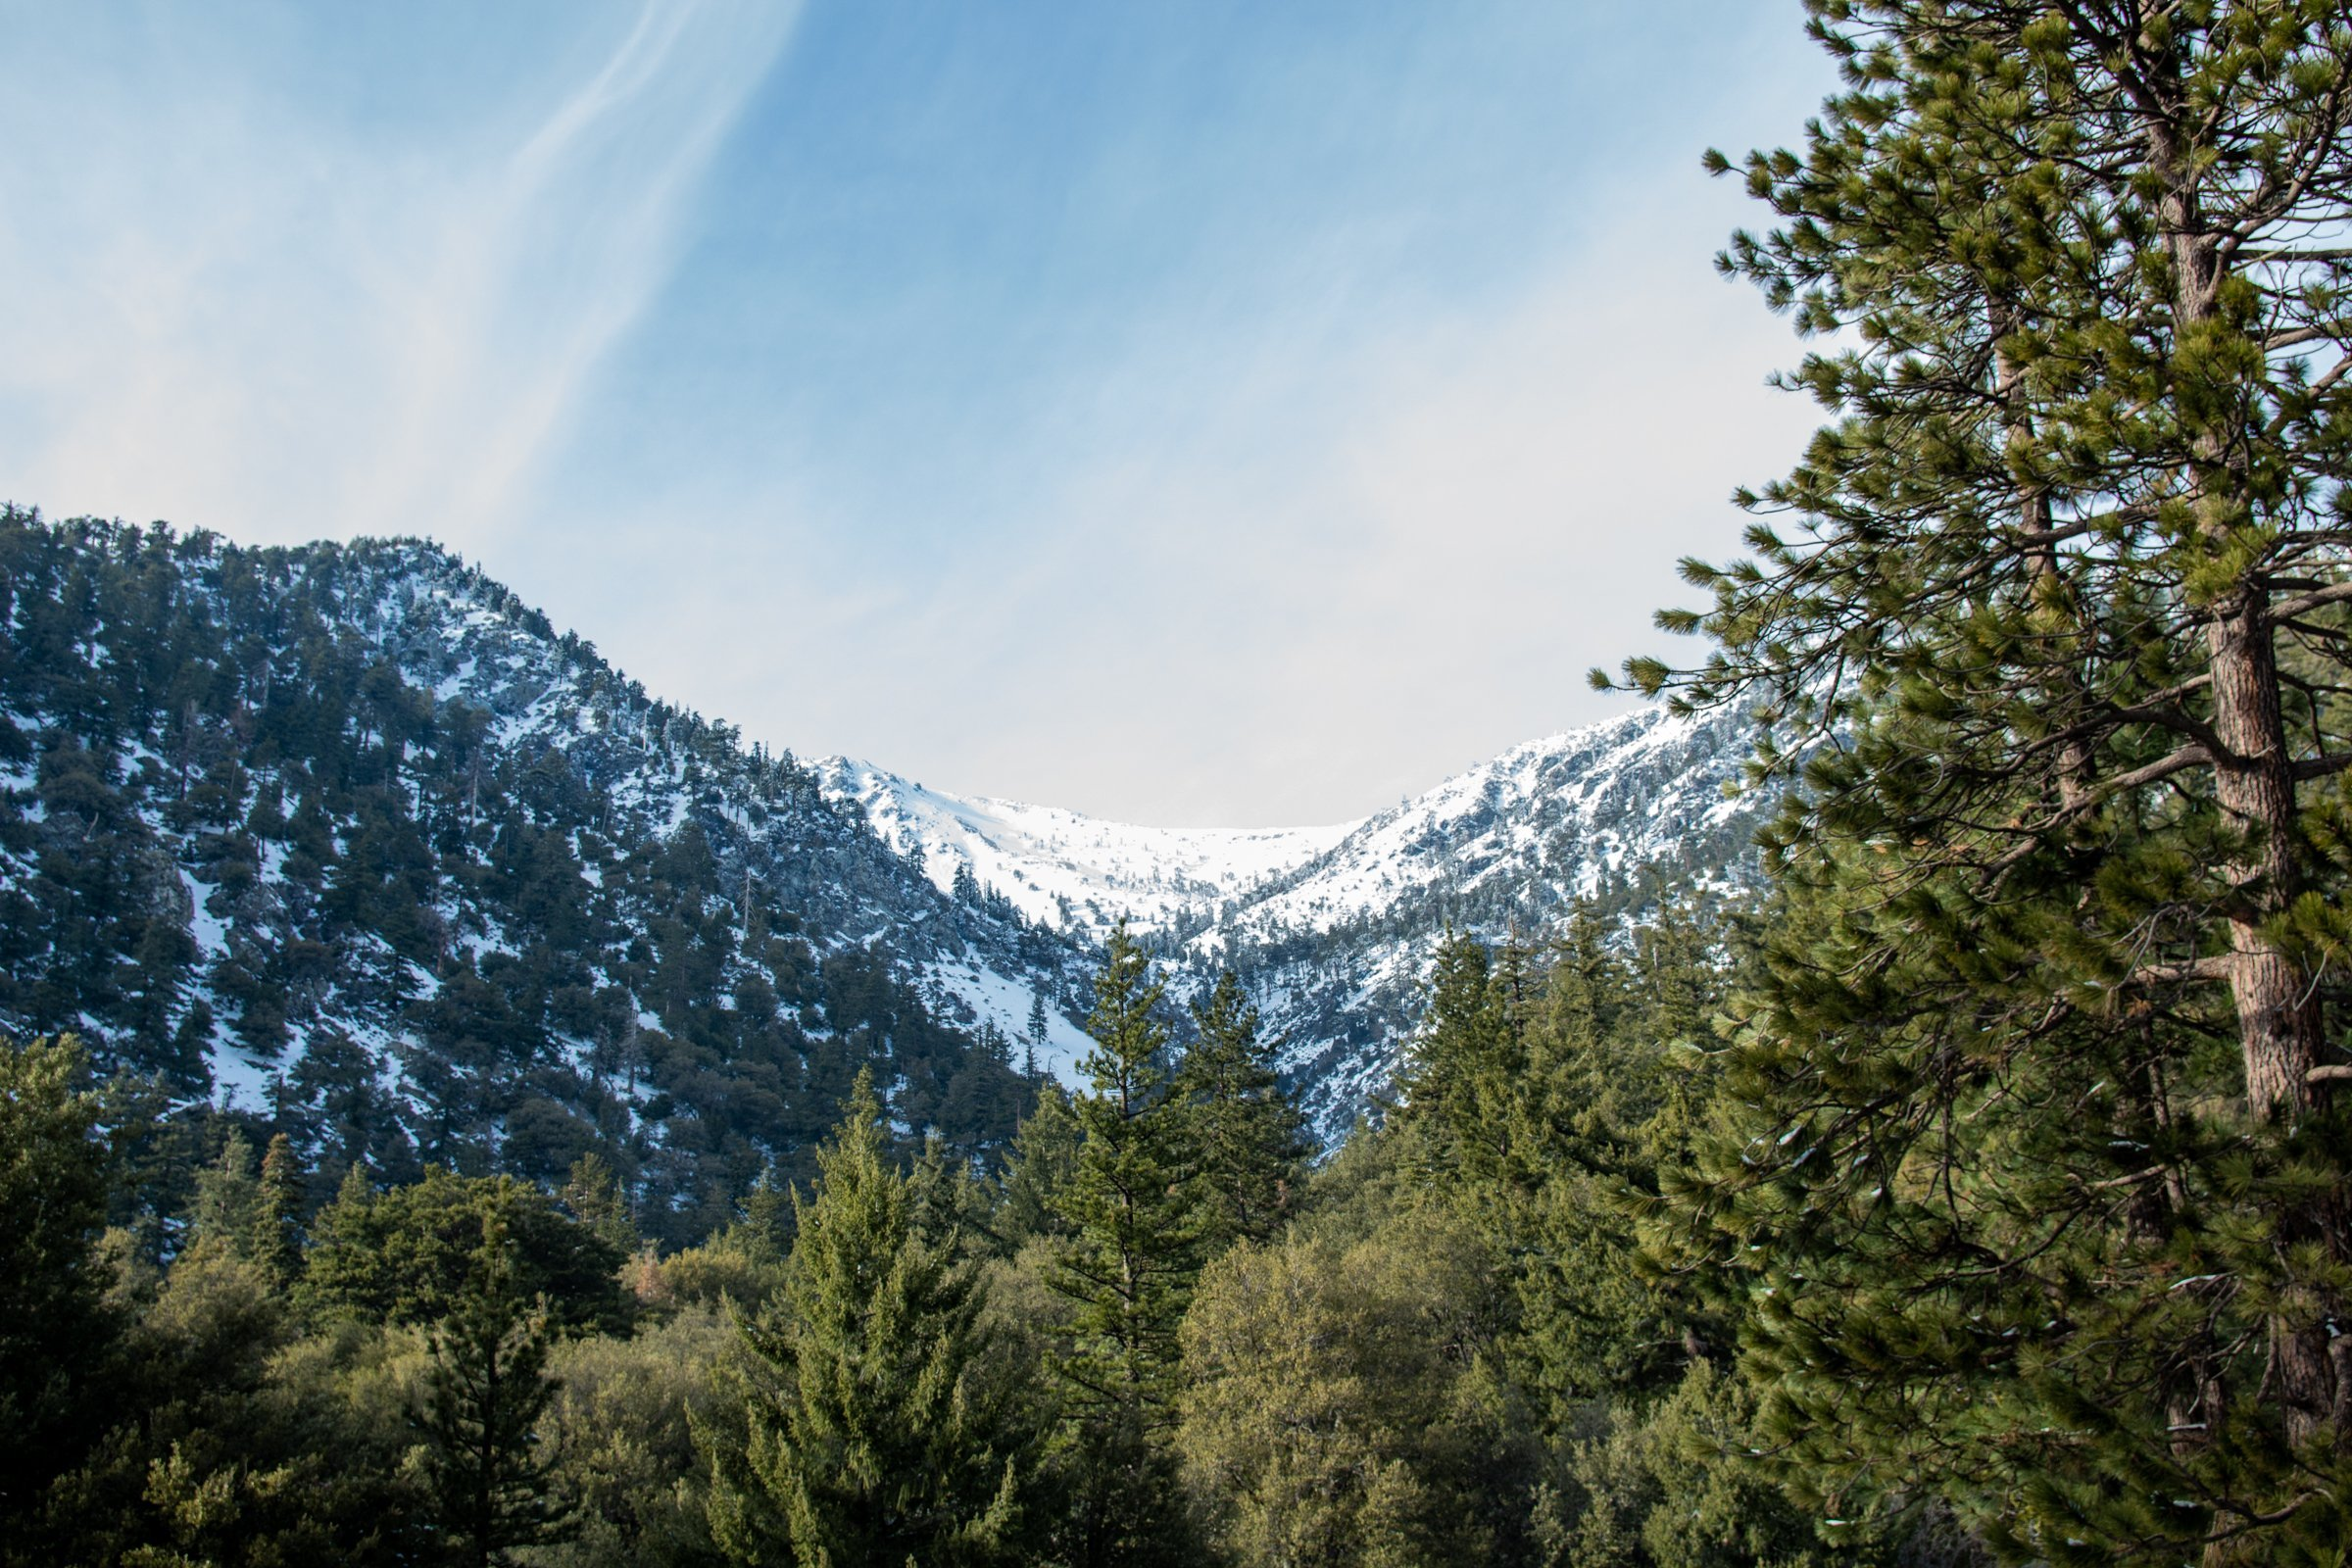 Ice Covered Mount Baldy Behind Forest Trees